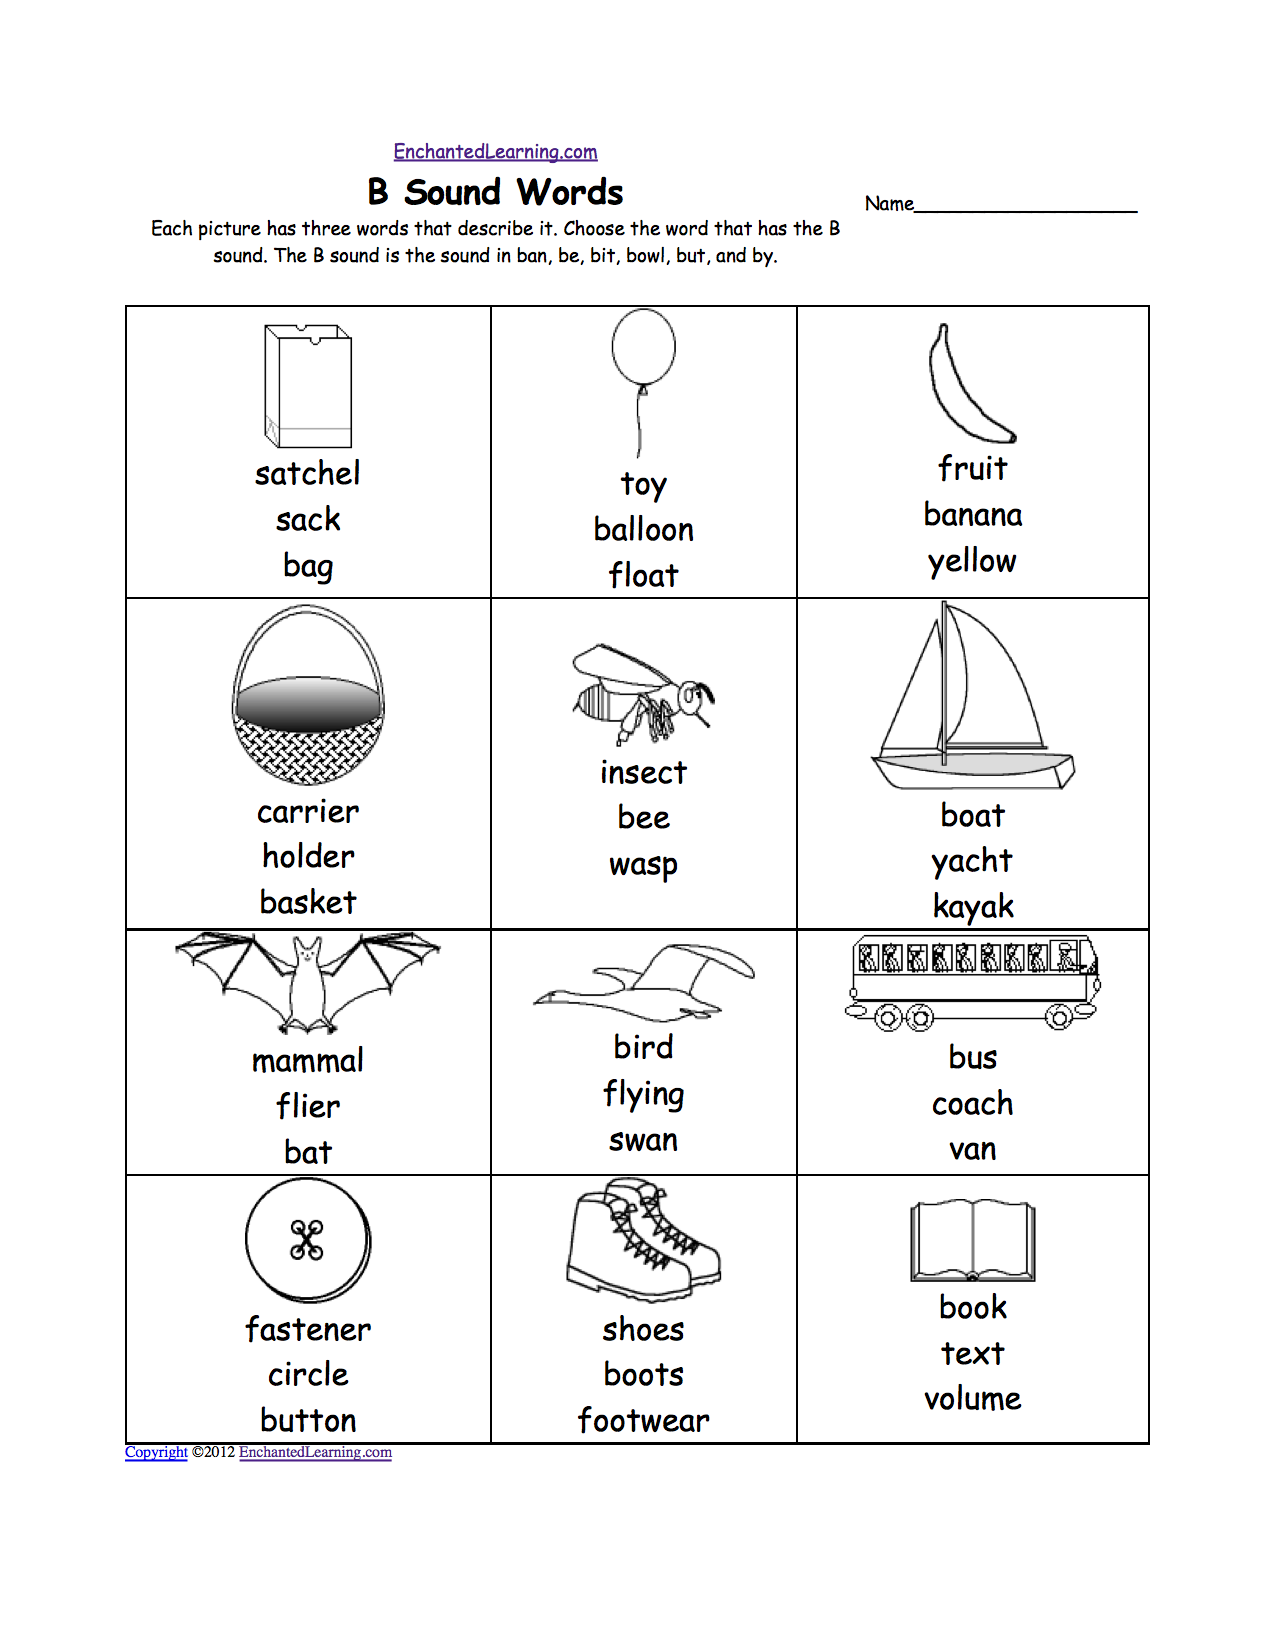 Weirdmailus  Nice Phonics Worksheets Multiple Choice Worksheets To Print  With Great Quotbquot Sound Phonics Worksheet Multiple Choice Each Picture Has Three Words That Describe It Choose The Word That Has A Quotbquot Sound The Quotbquot Sound Is The Sound  With Divine Long Division Of Polynomials Worksheet Also Sentence Worksheets In Addition Ionic Bond Worksheet And Simple Compound Complex Sentences Worksheet As Well As Systems Of Equations Word Problems Worksheets Additionally Create Spelling Worksheets From Enchantedlearningcom With Weirdmailus  Great Phonics Worksheets Multiple Choice Worksheets To Print  With Divine Quotbquot Sound Phonics Worksheet Multiple Choice Each Picture Has Three Words That Describe It Choose The Word That Has A Quotbquot Sound The Quotbquot Sound Is The Sound  And Nice Long Division Of Polynomials Worksheet Also Sentence Worksheets In Addition Ionic Bond Worksheet From Enchantedlearningcom